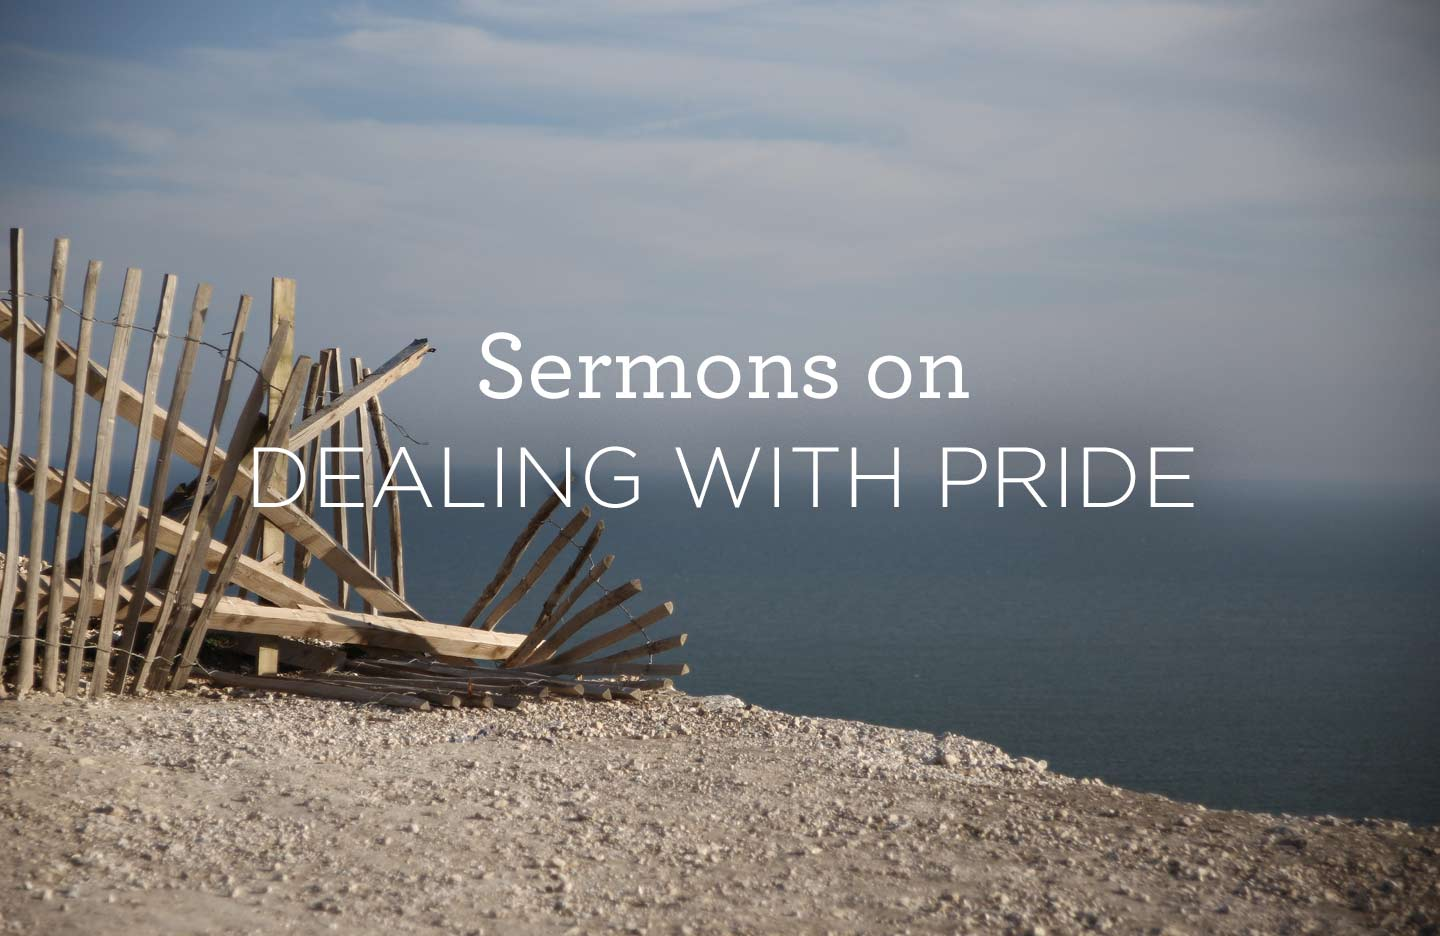 thumbnail image for Sermons on Dealing with Pride